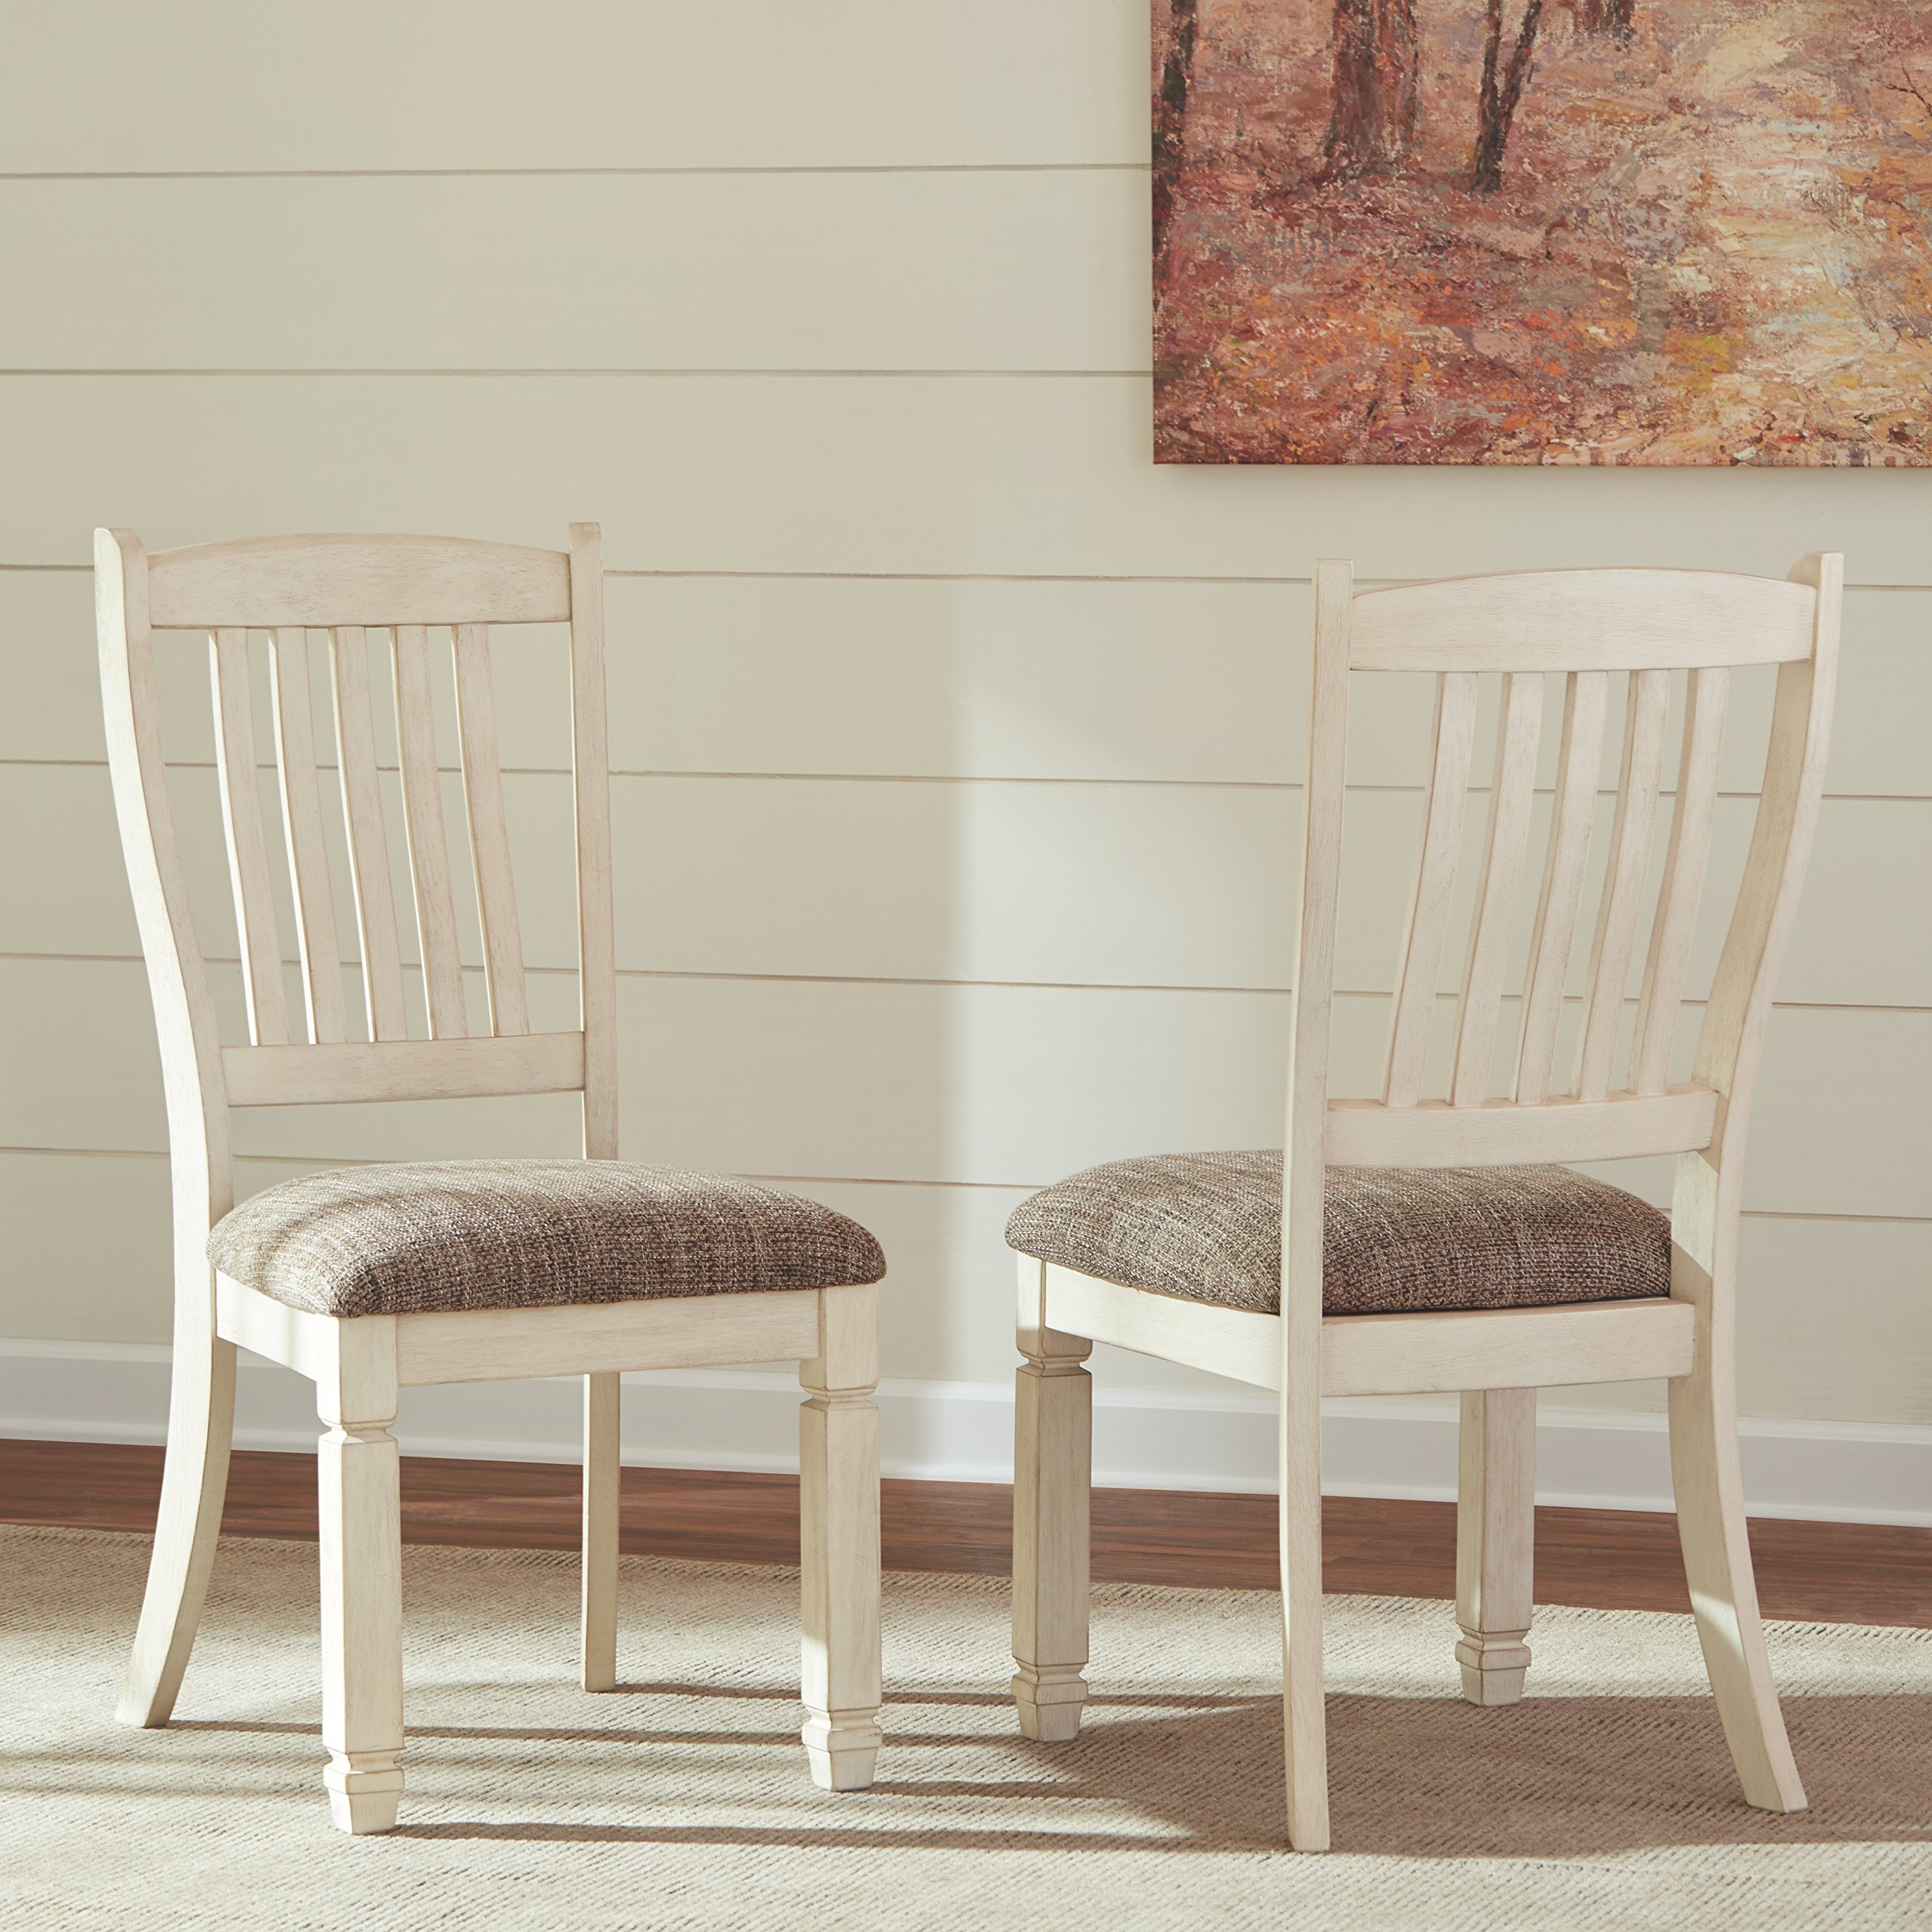 Ashley Furniture Signature Design - Bolanburg Dining Room Chair - Antique White by Signature Design by Ashley (Image #4)